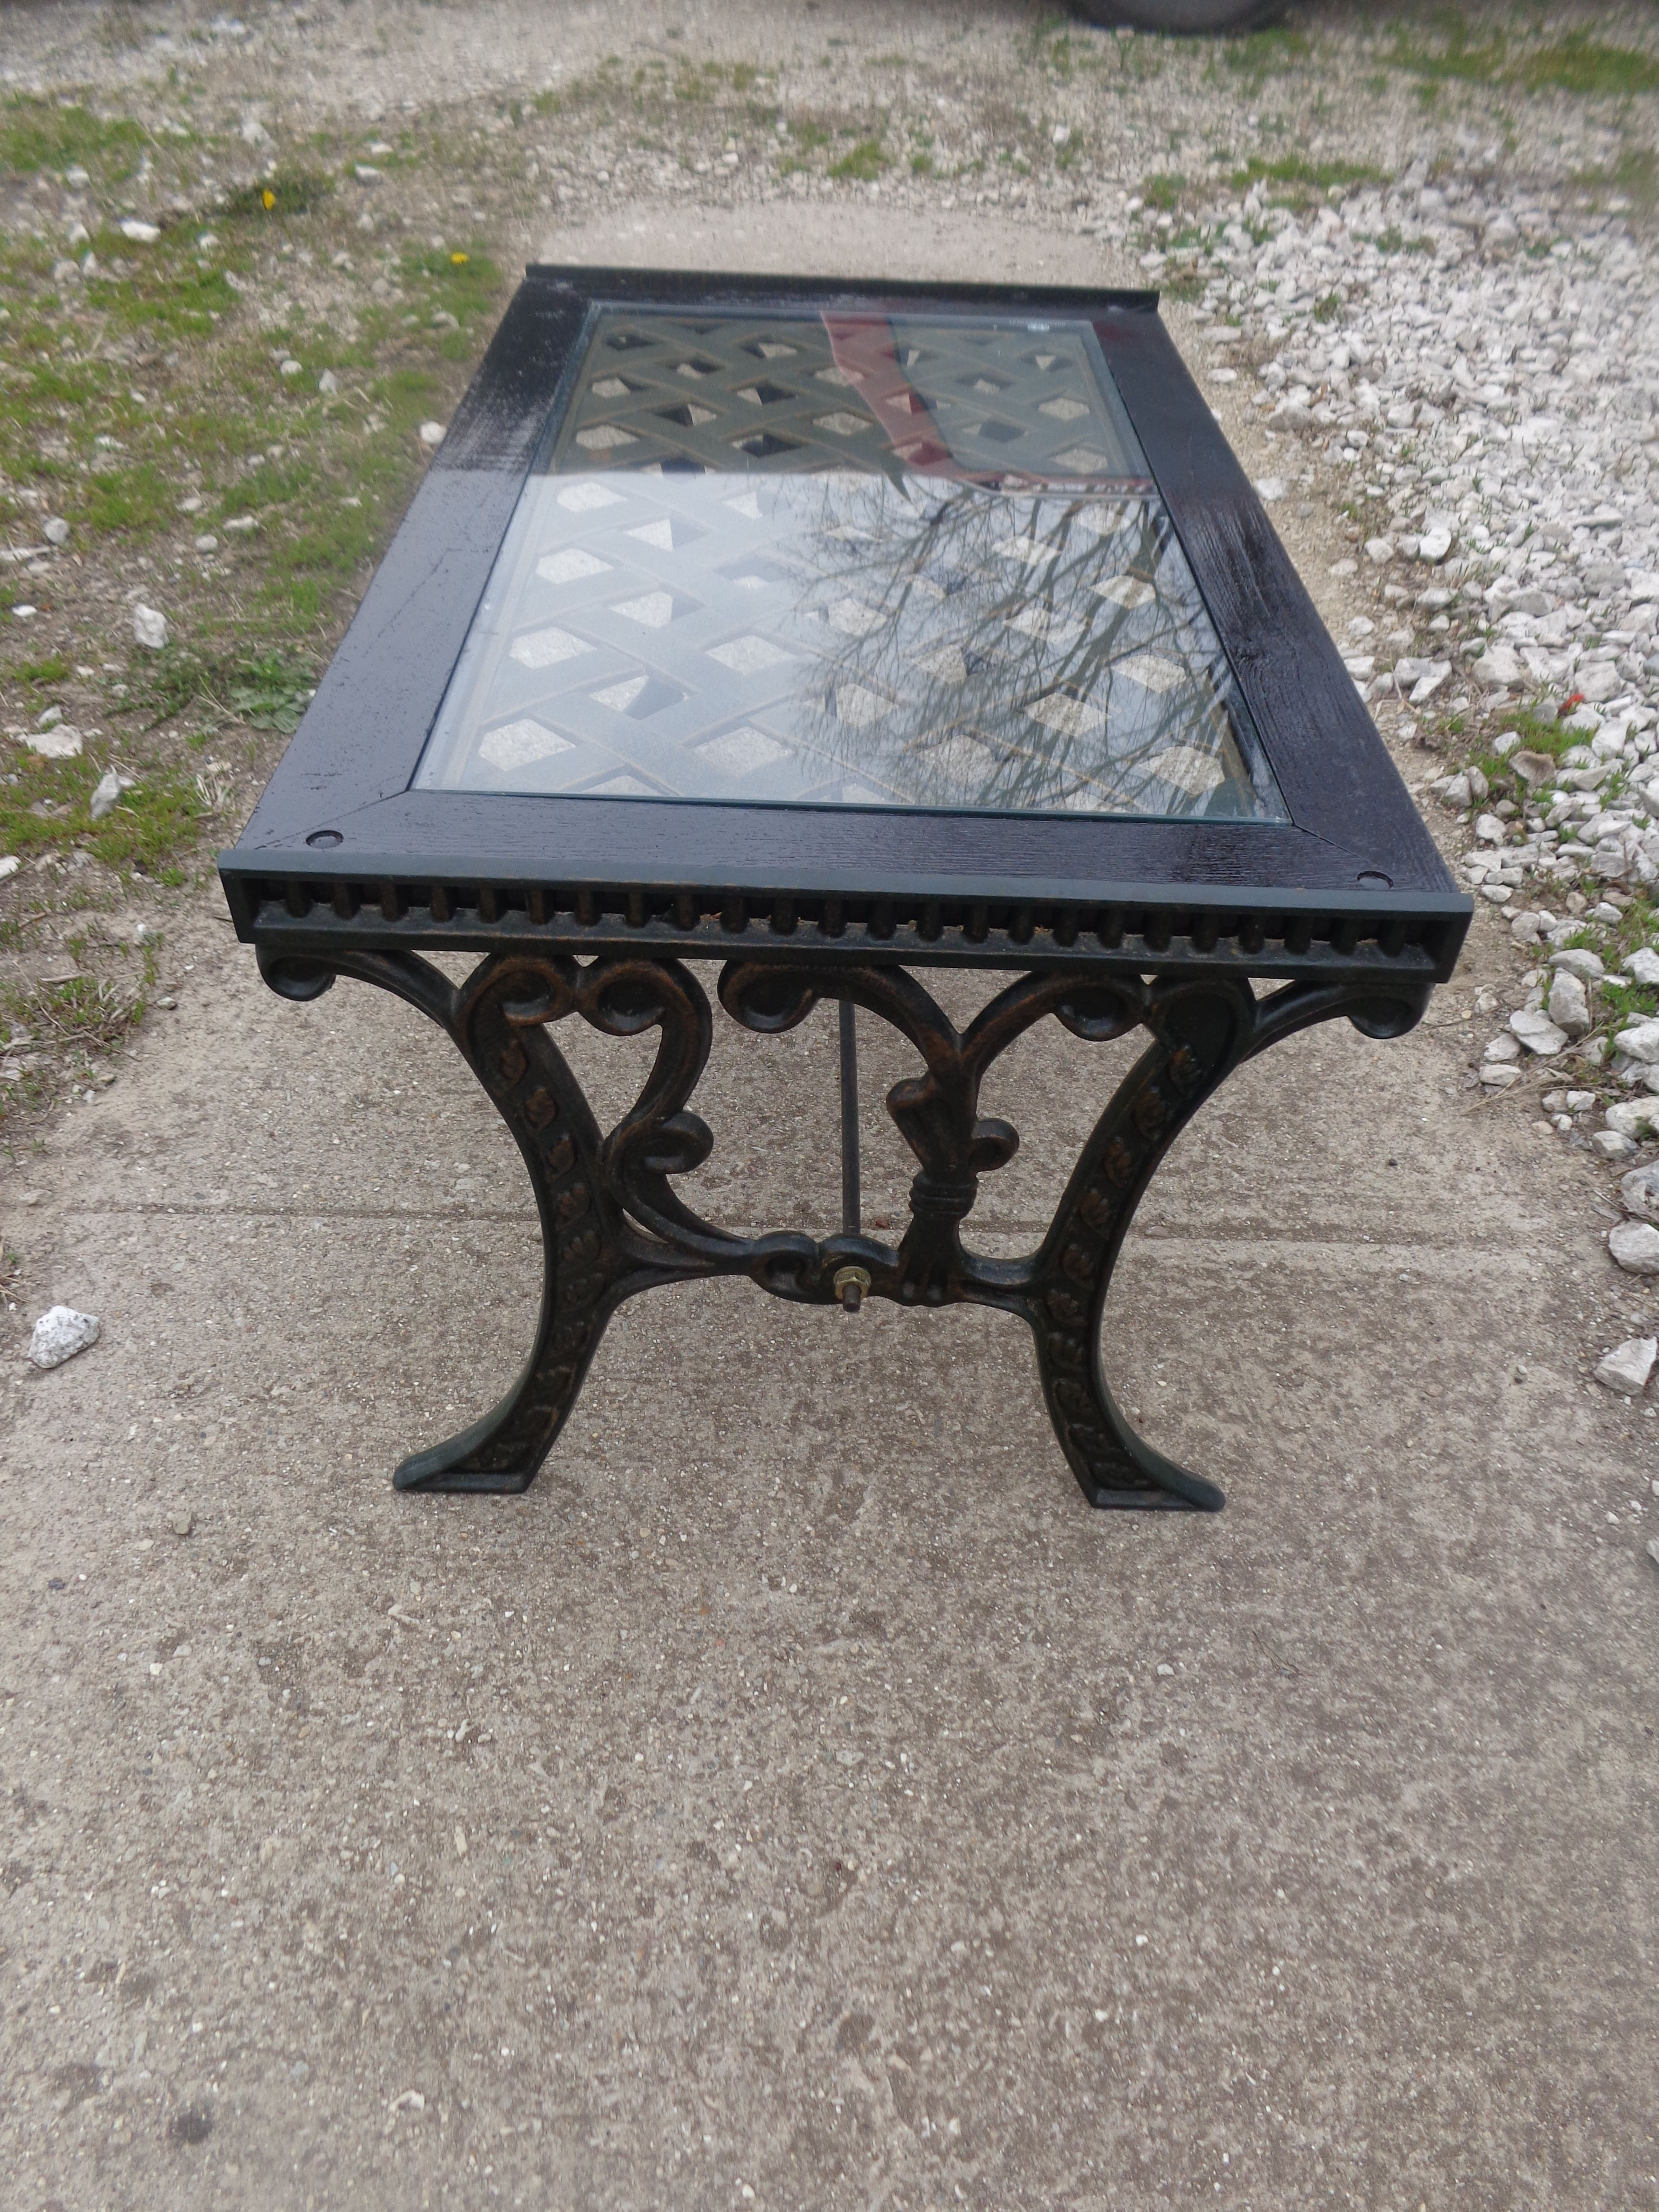 Modern Wood Glass Wrought Iron Coffee Table Cleaned Up And Painted Sealed Wood With Black Gloss Oil Based Paint Disenos De Unas Muebles [ 4608 x 3456 Pixel ]